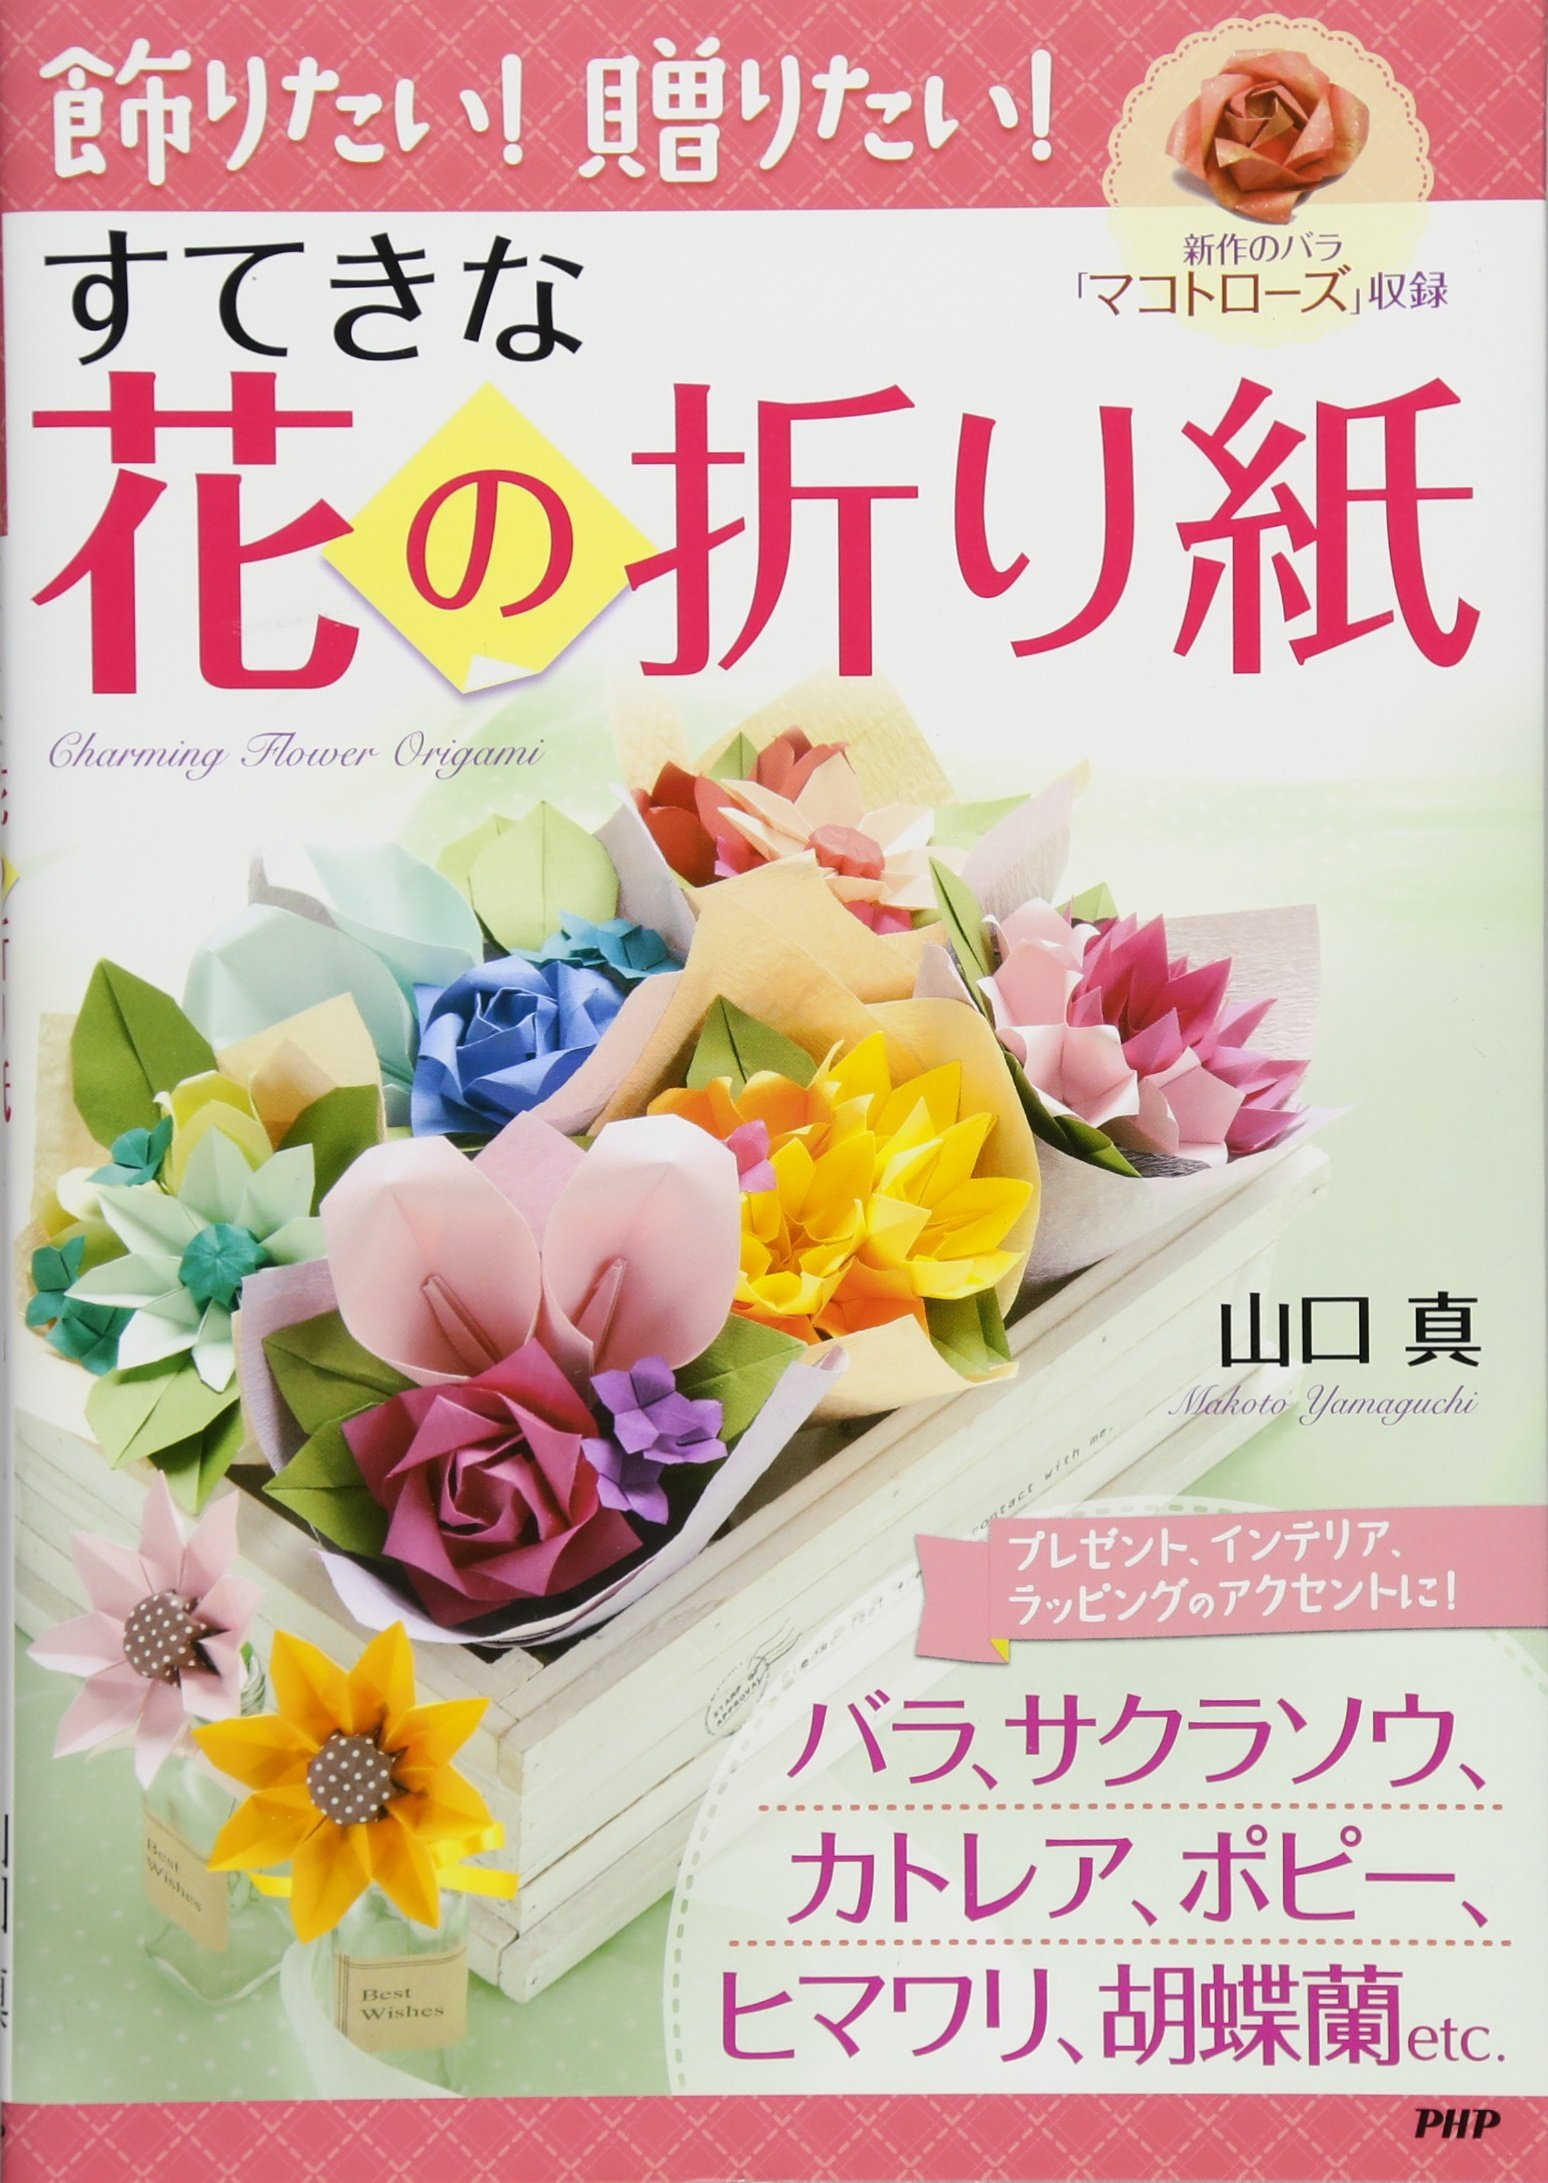 Download Japanese Craft Book - Kazaritai! Okuritai! Sutekina Hana no Origami ~ Charming Flower Origami ~ [Japanese Edition] [JE] pdf epub